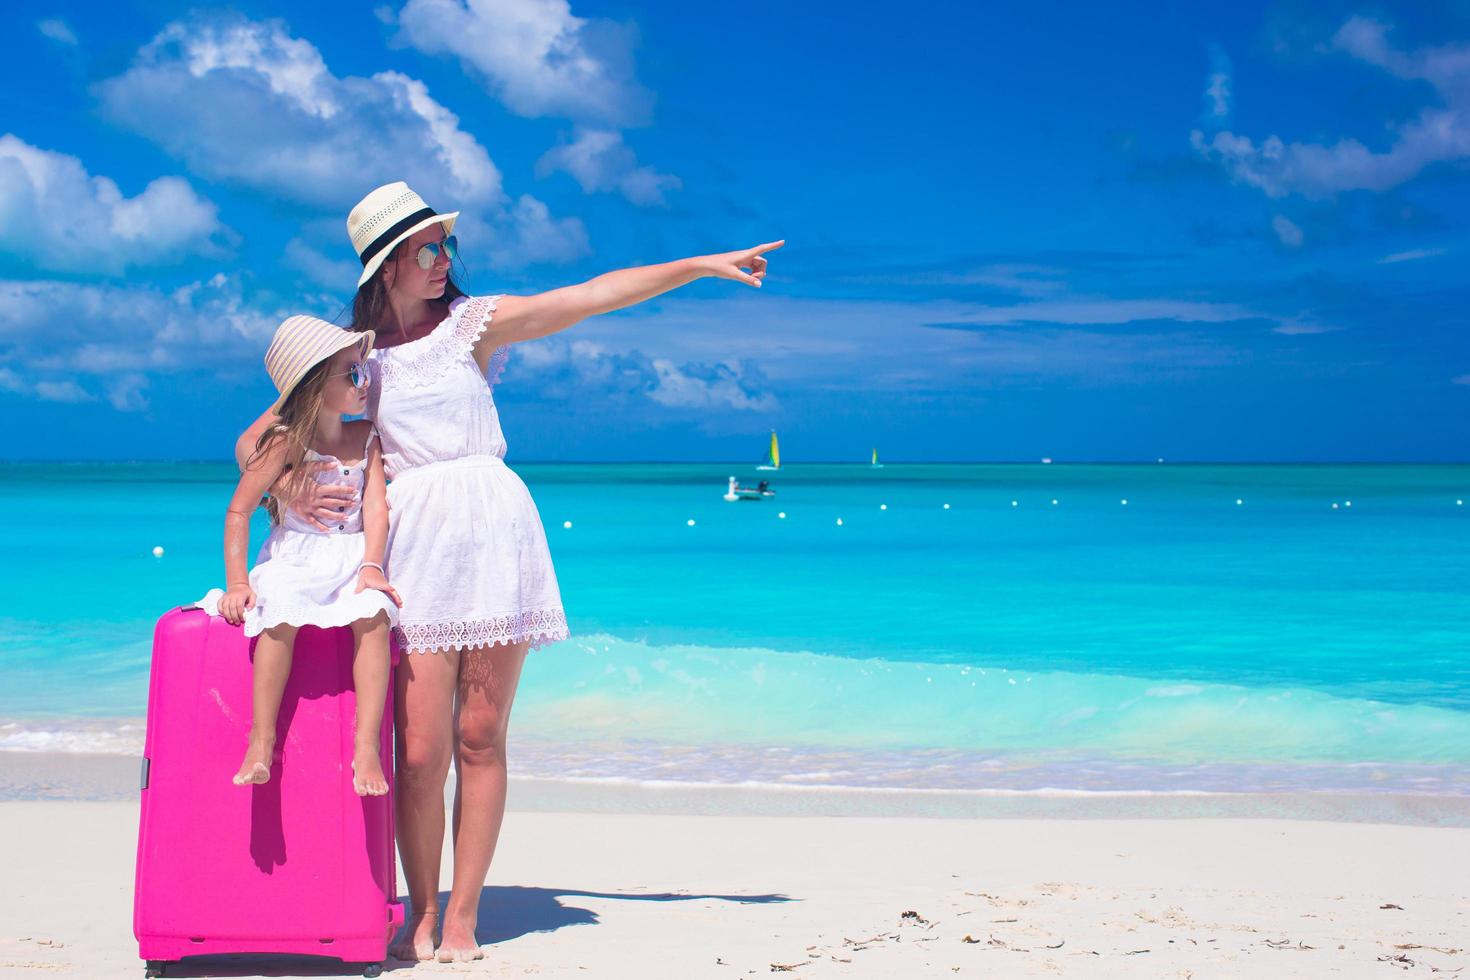 Mother and daughter with luggage on a tropical beach photo